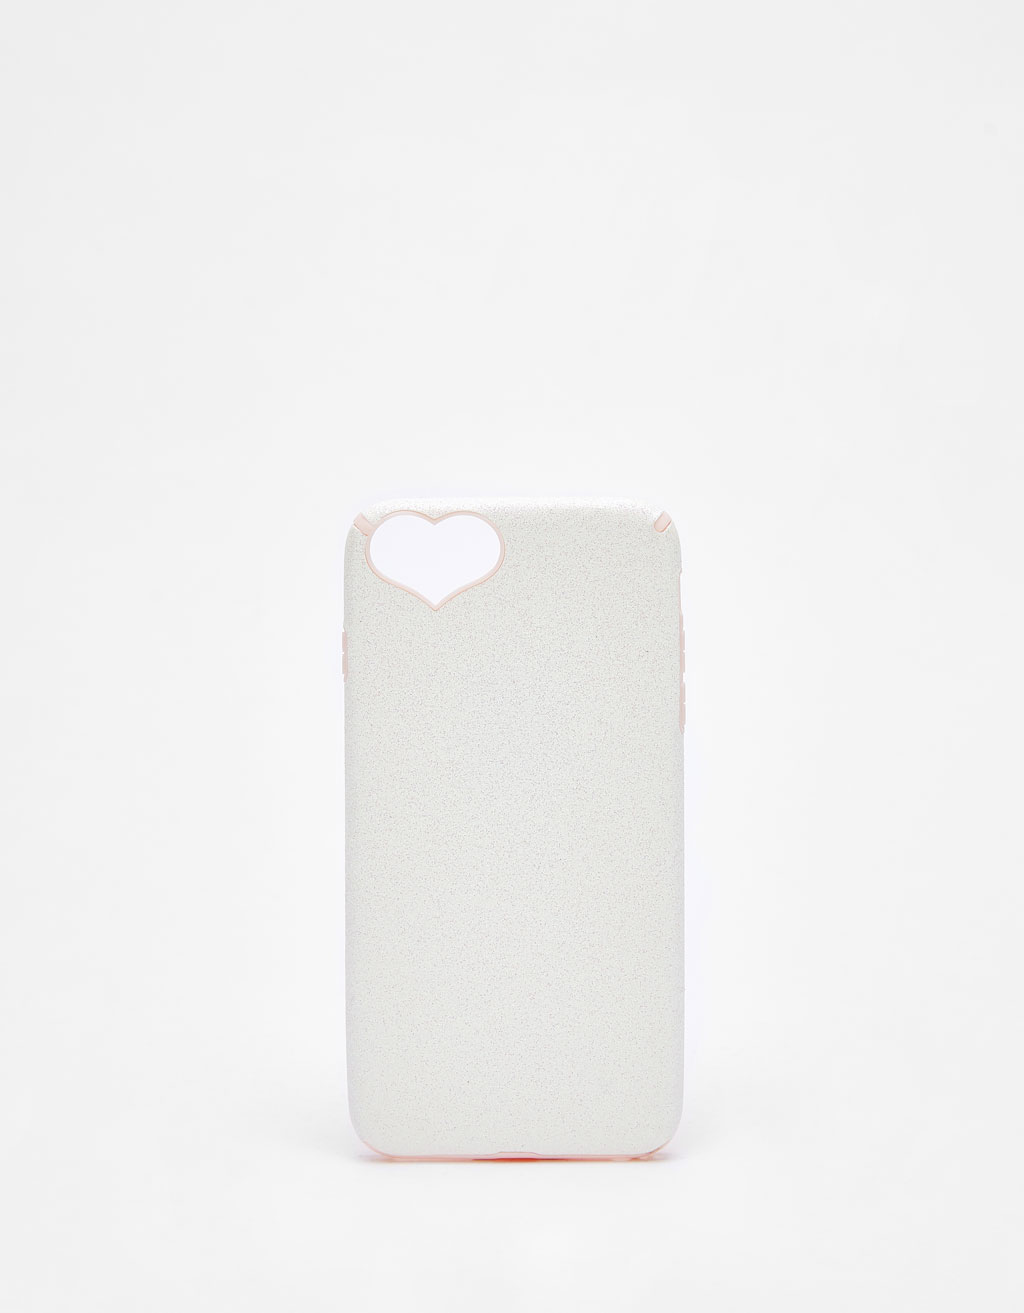 Coque paillettes cœur iPhone 6 plus/7 plus/8 plus